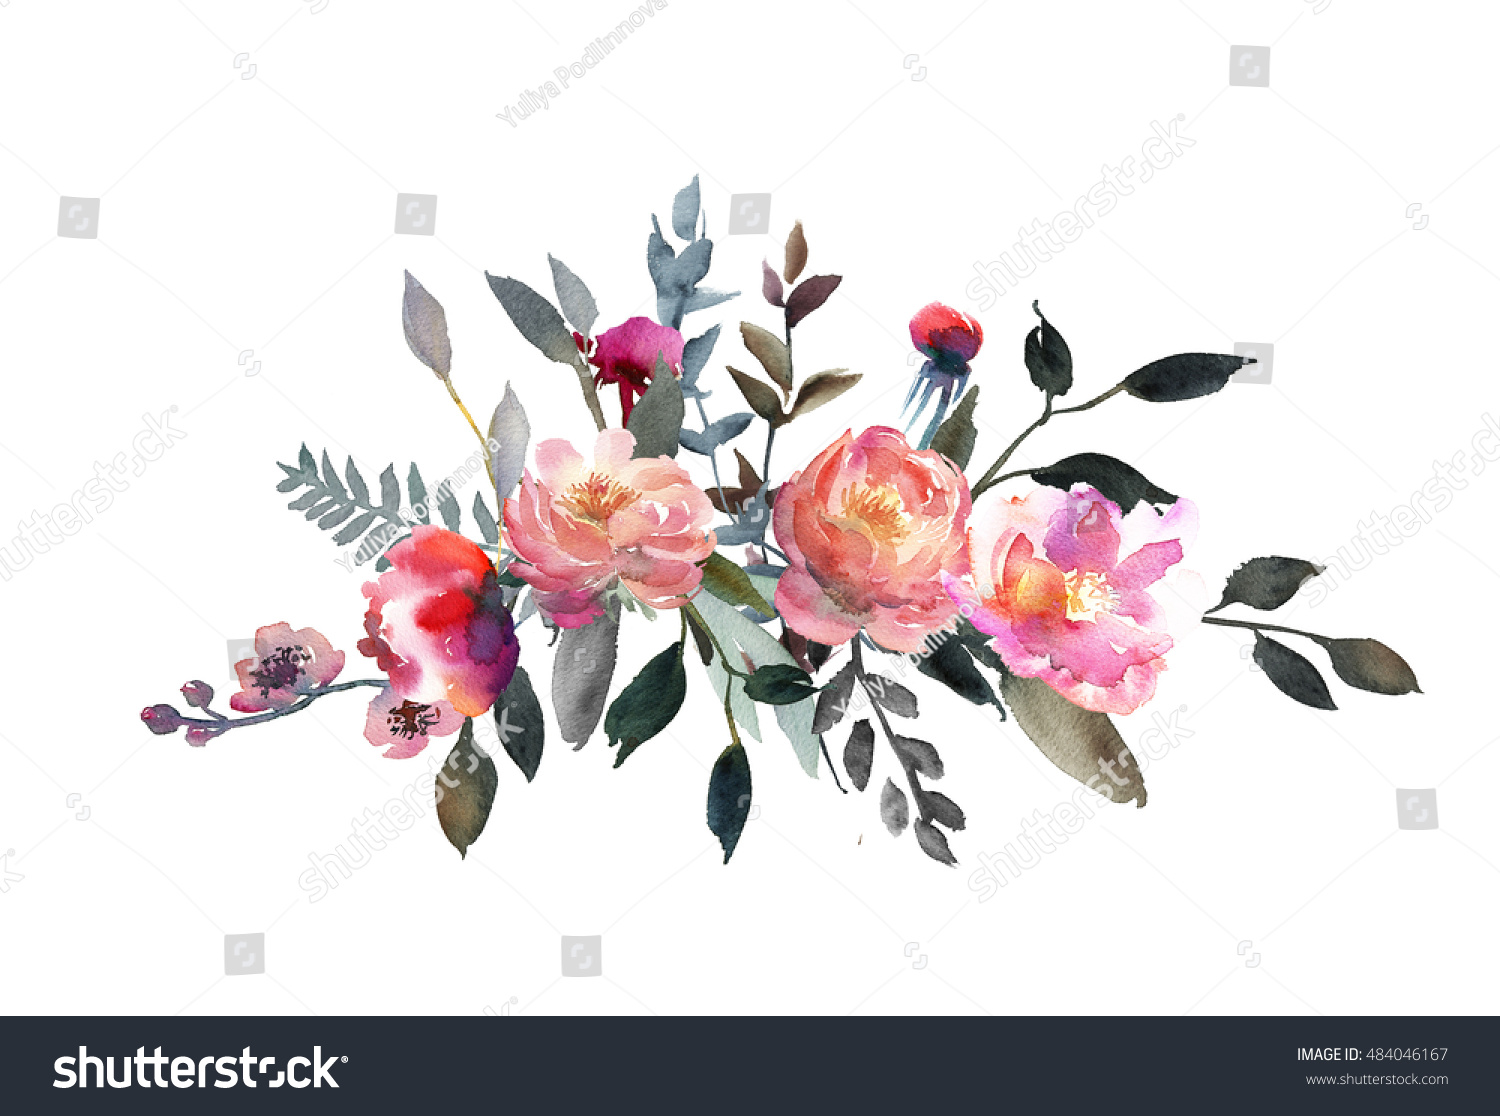 Watercolor peony floral bouquet pink coral stock illustration watercolor peony floral bouquet pink coral grey flowers peonies leaves branches arrangements for winter wedding or mightylinksfo